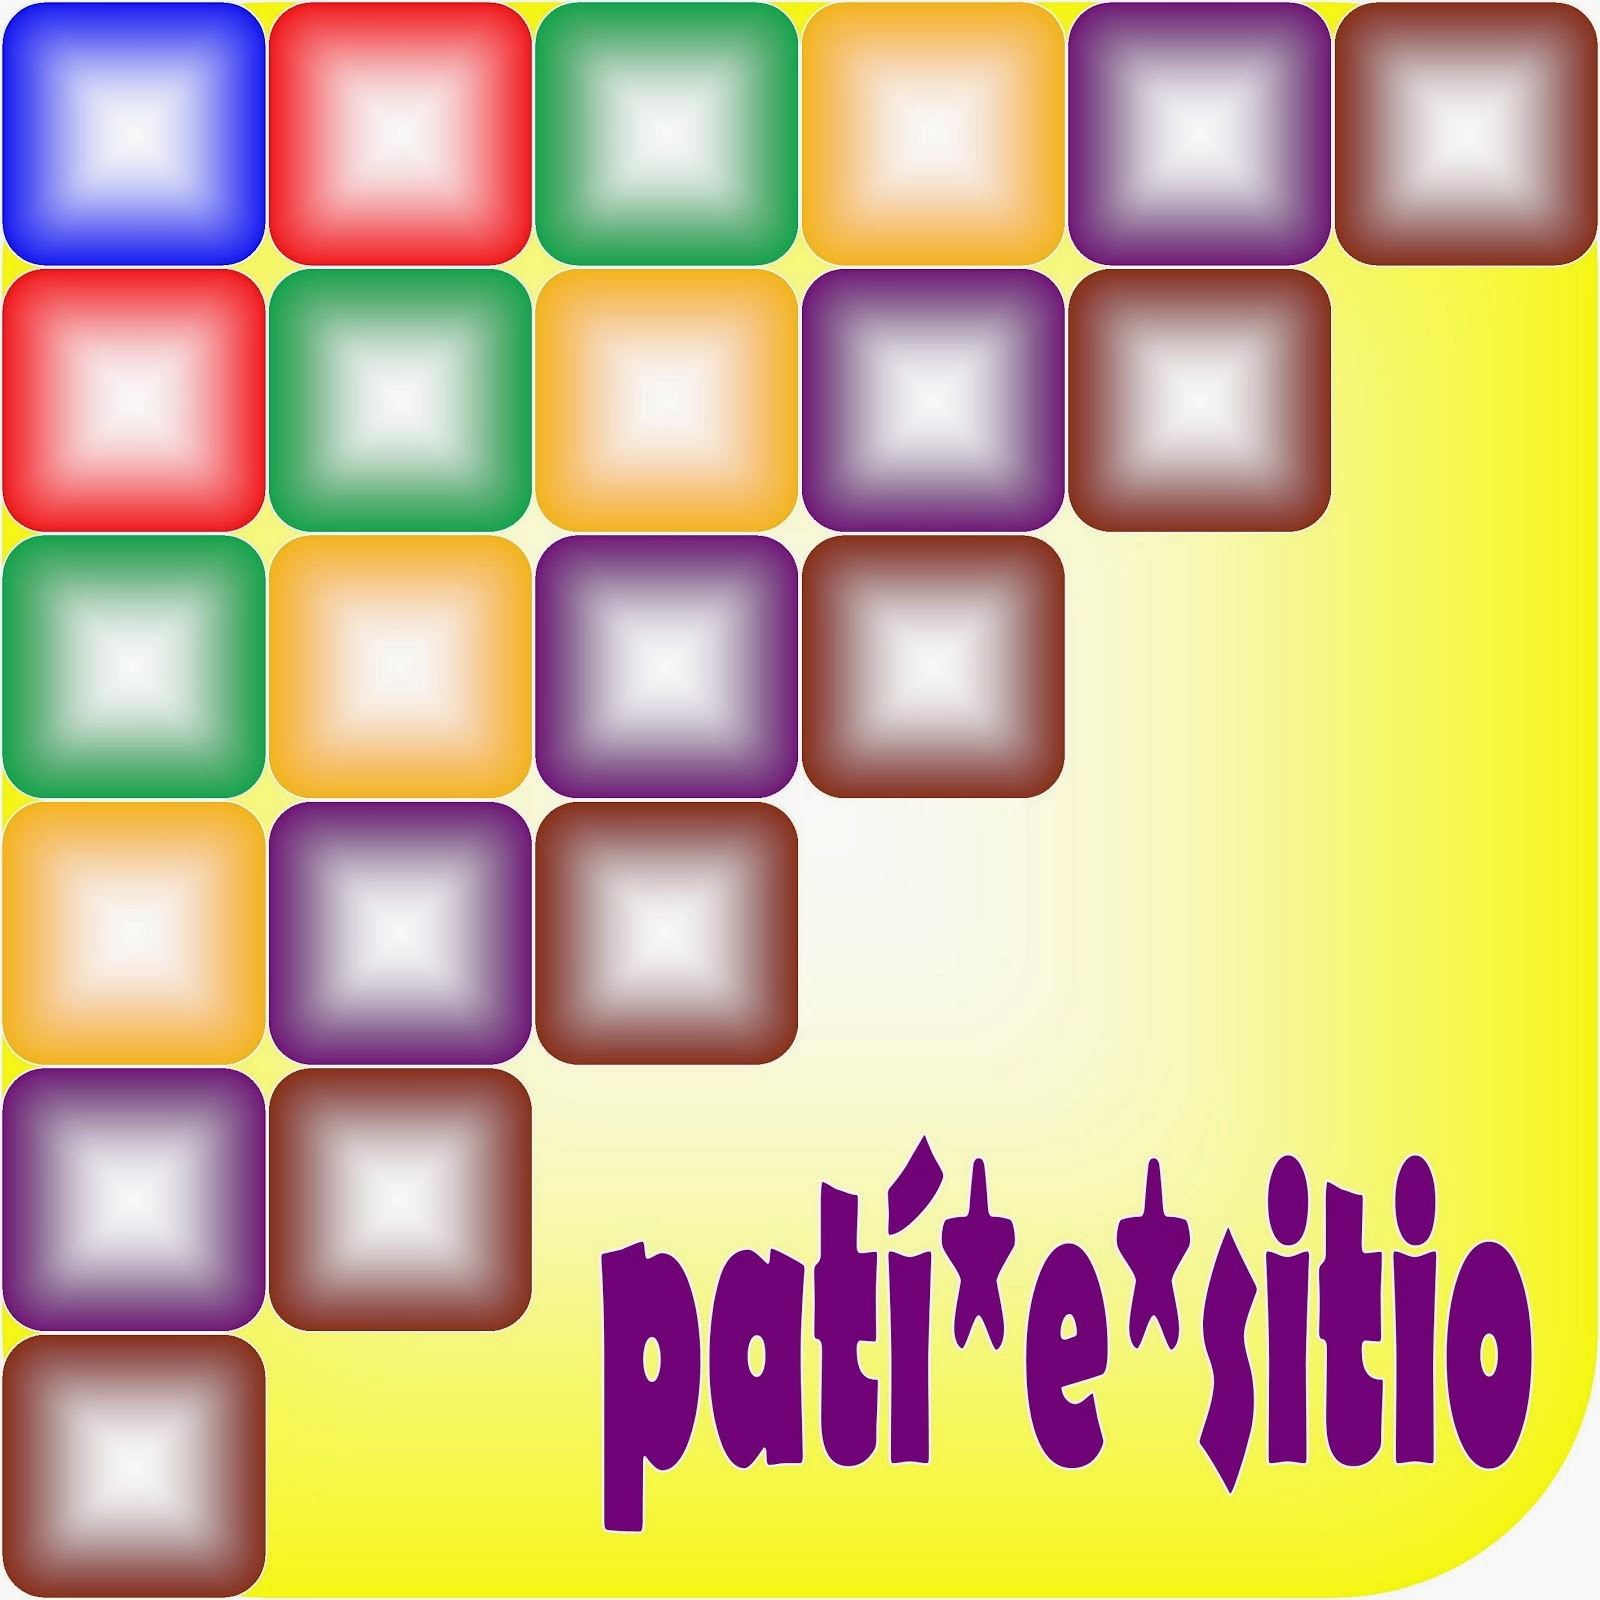 Patiesitio Cultural